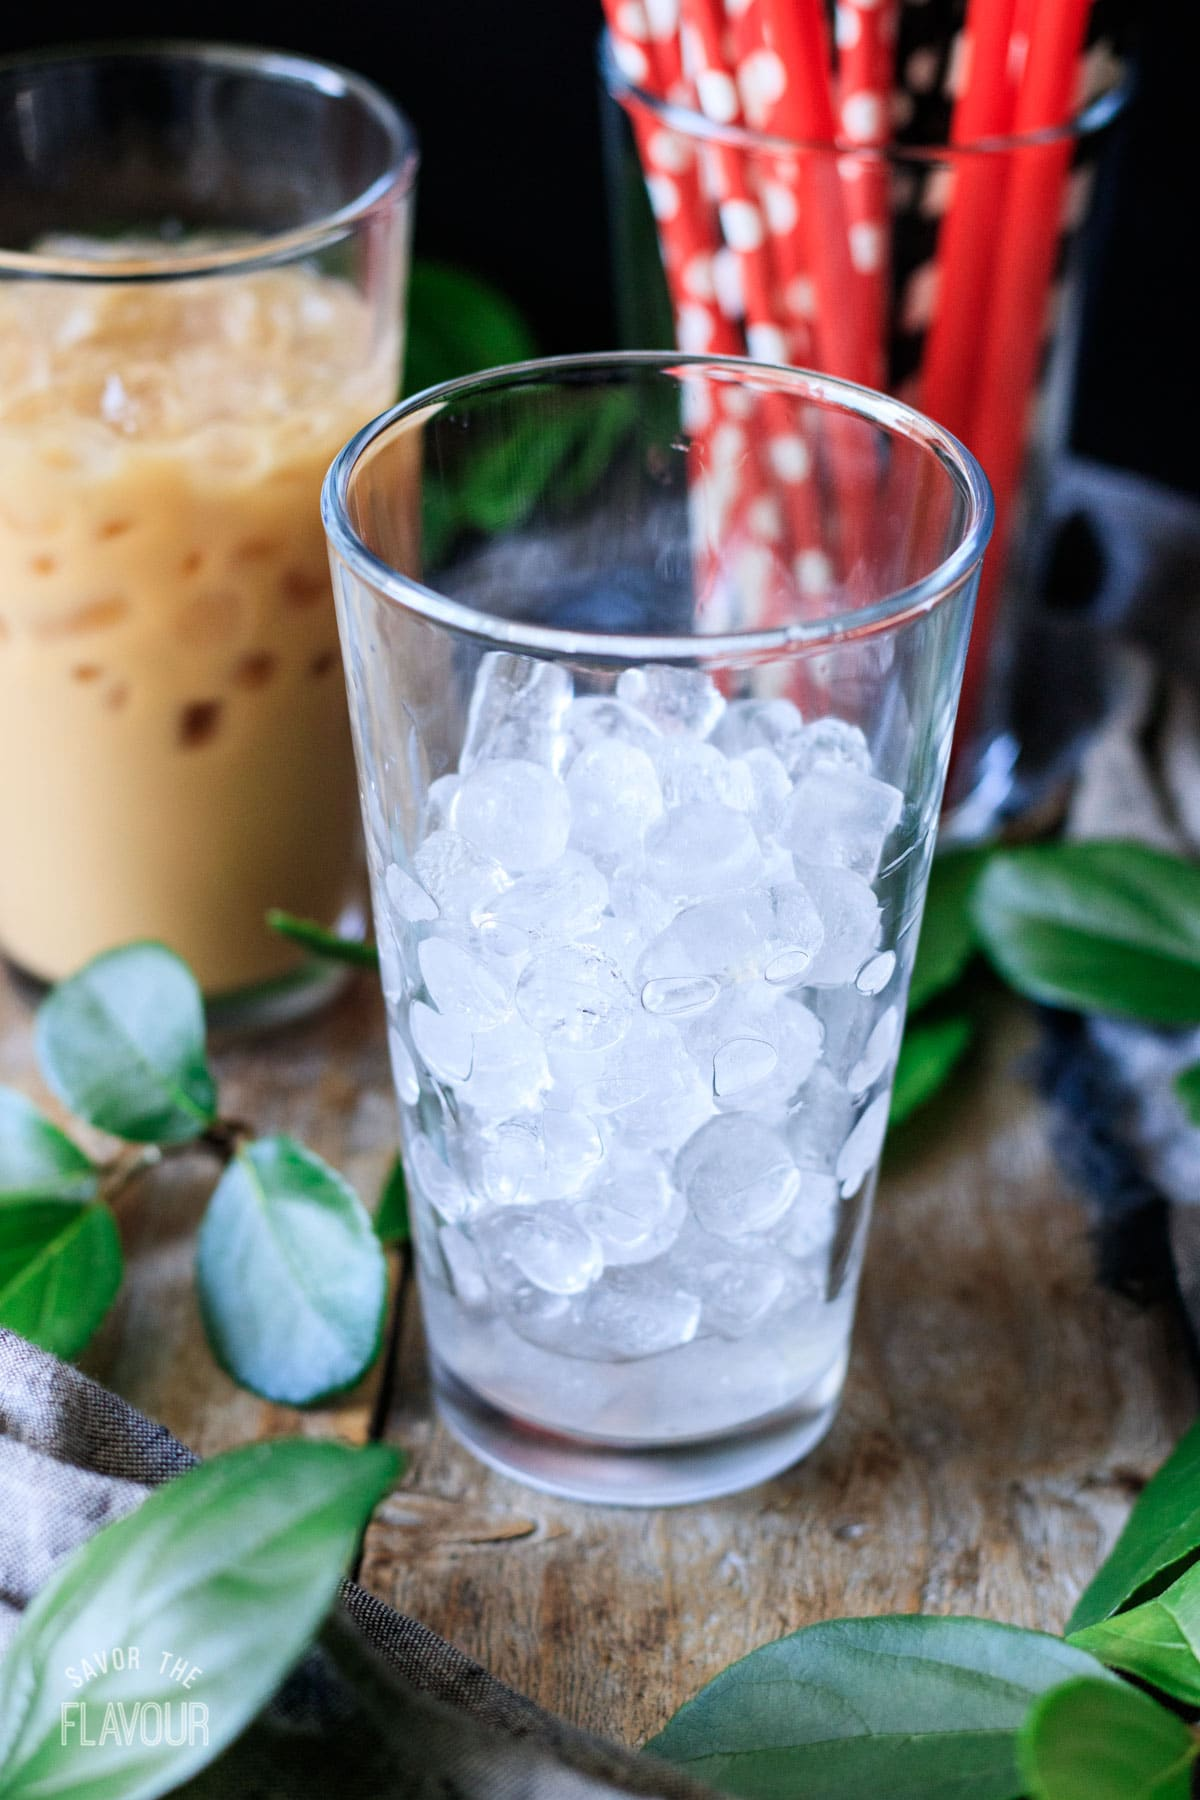 a glass filled with chewy ice